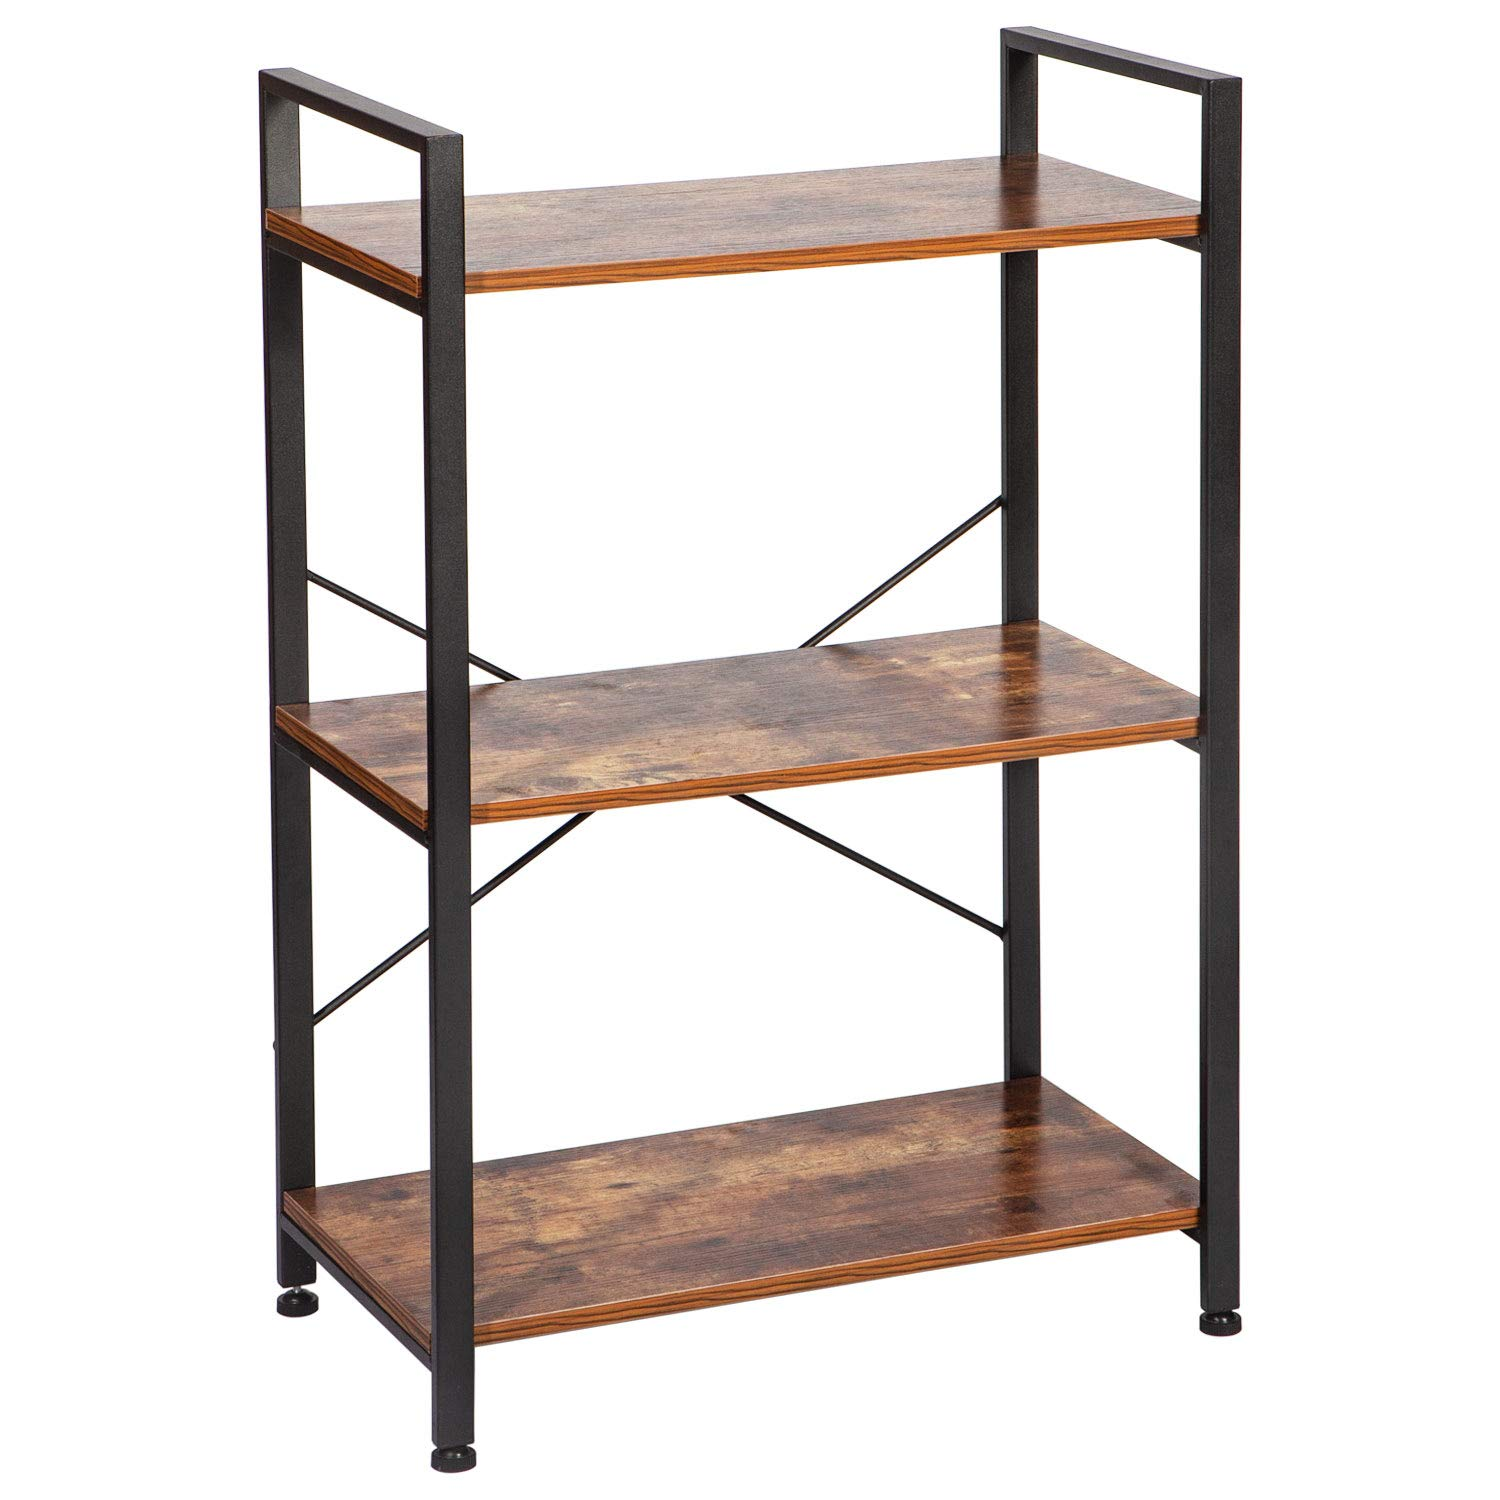 IRONCK Bookshelf, 3-Tier Ladder Shelf, Storage Rack Shelf Unit for Bathroom, Living Room, Industrial Bookcase Home Decor, Wood Look Accent Furniture Metal Frame